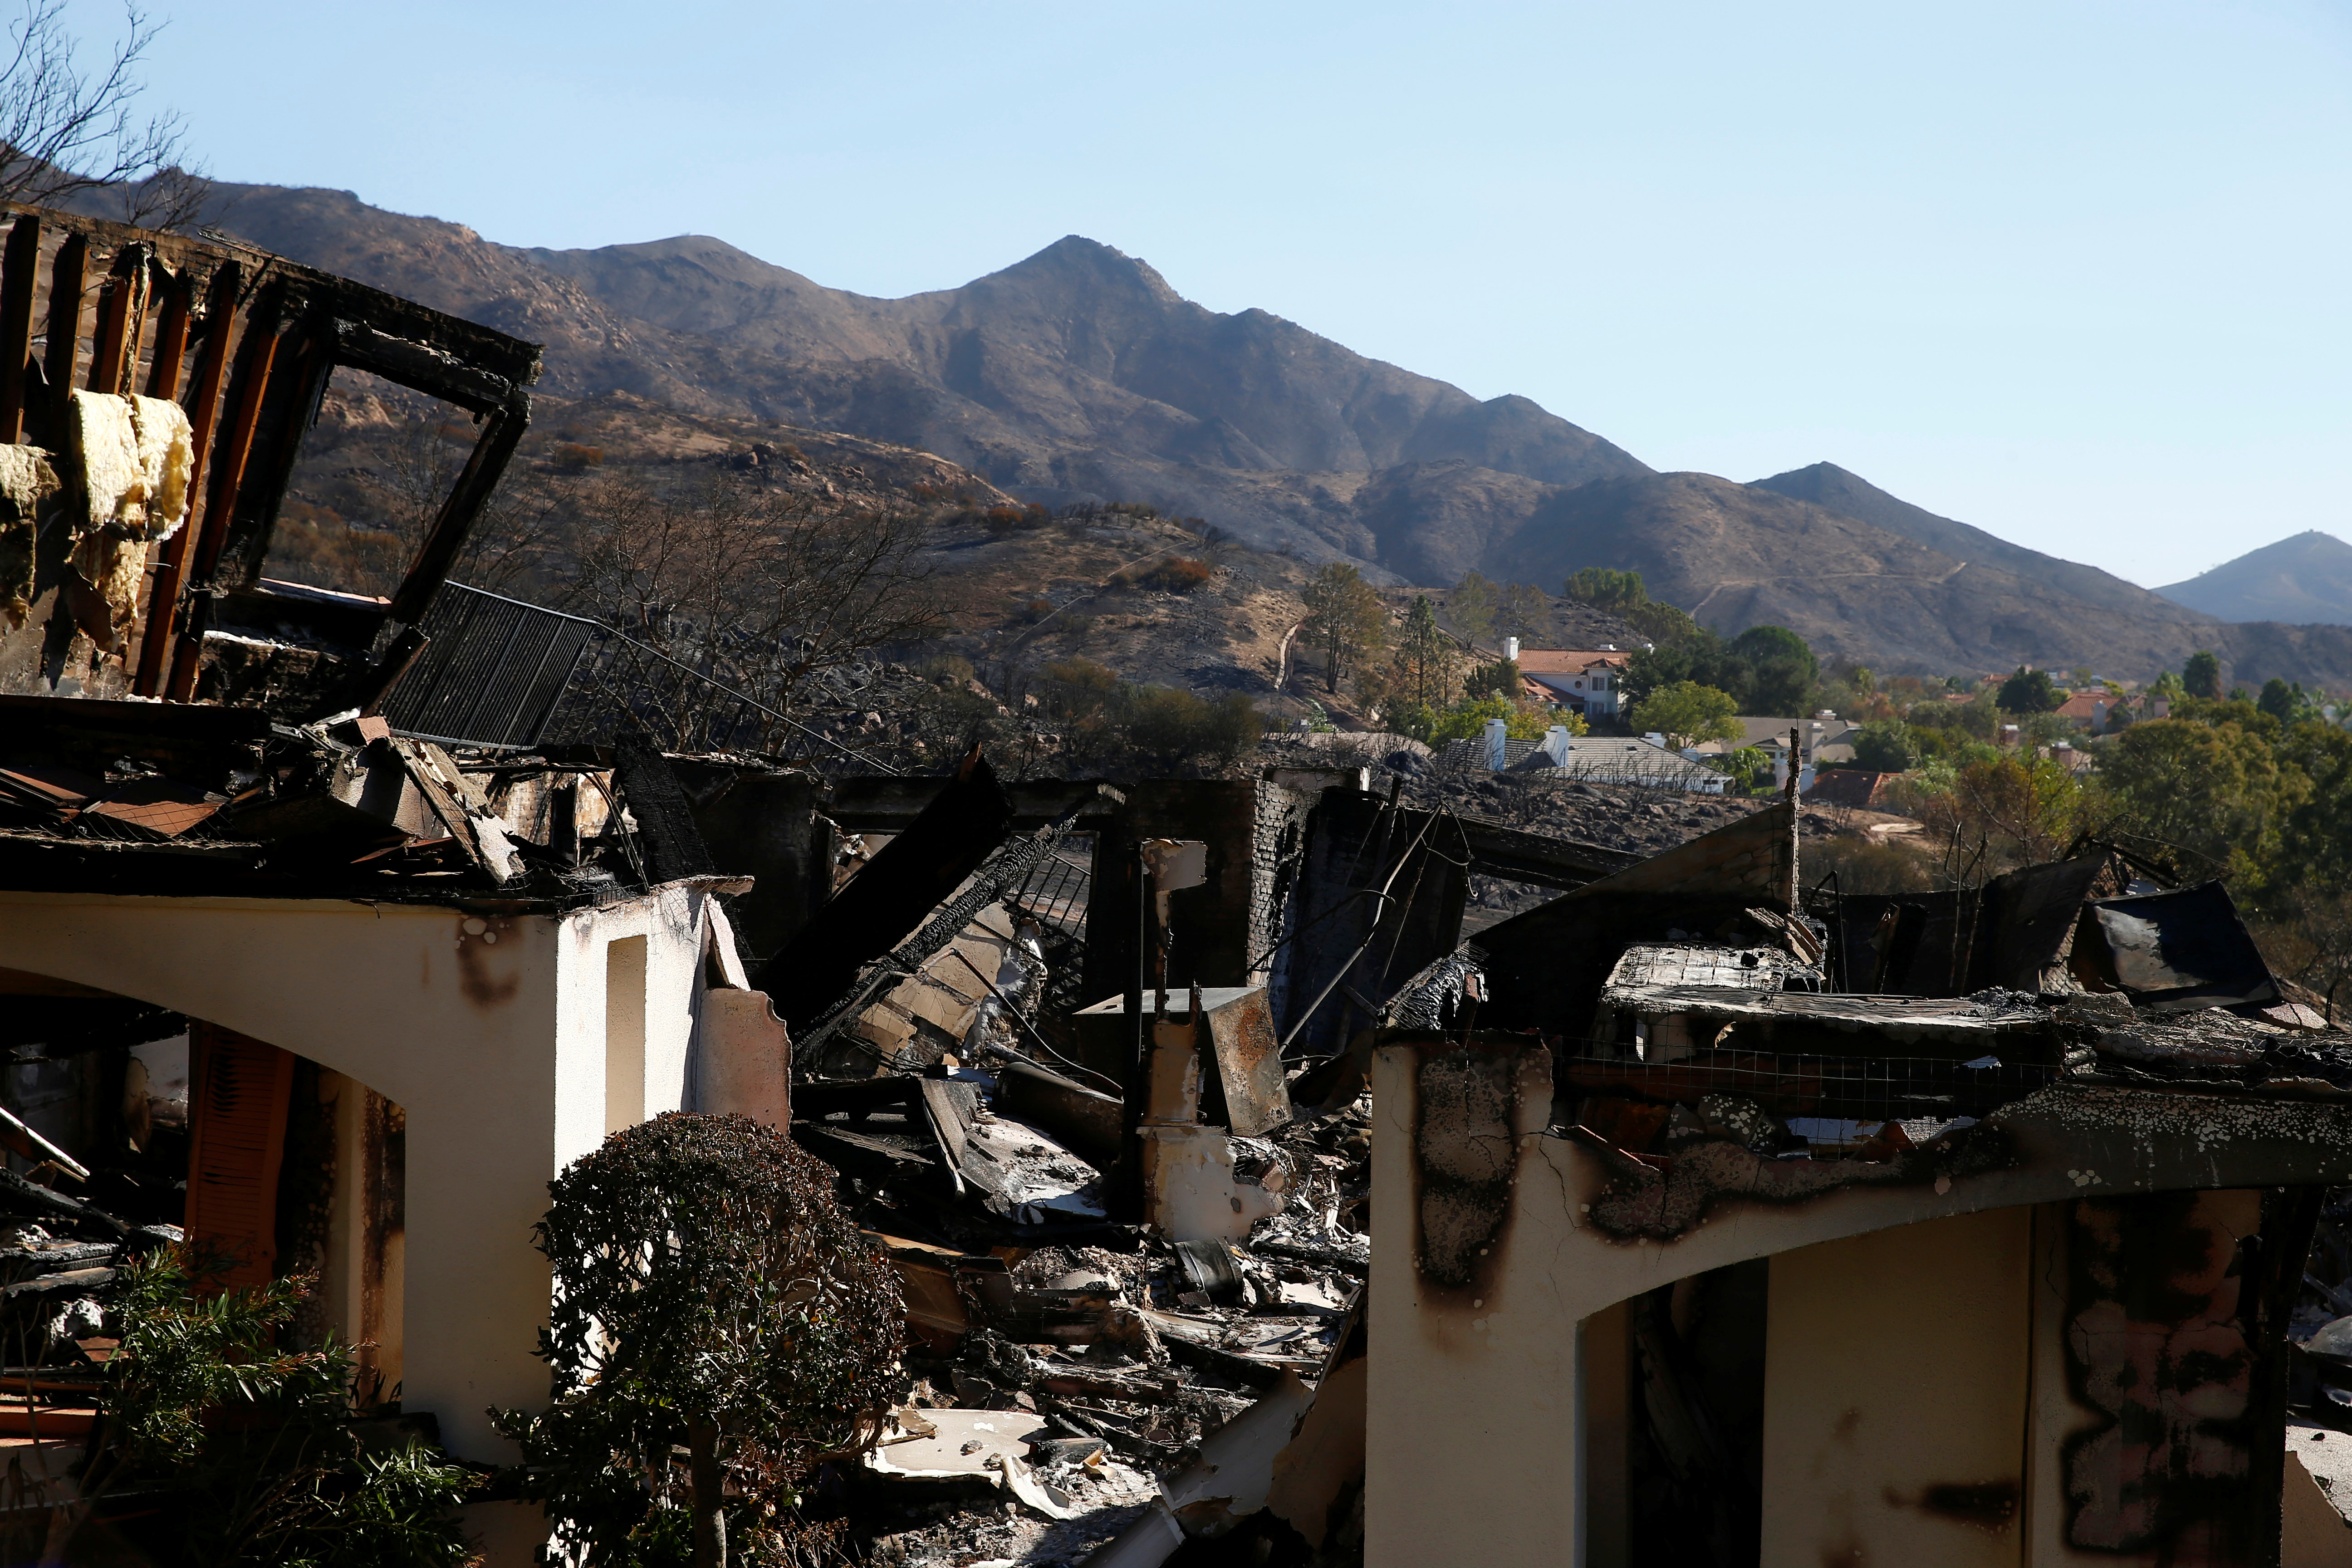 A home destroyed by the Woolsey Fire is seen in Thousand Oaks, California, U.S. November 12, 2018. REUTERS/Eric Thayer